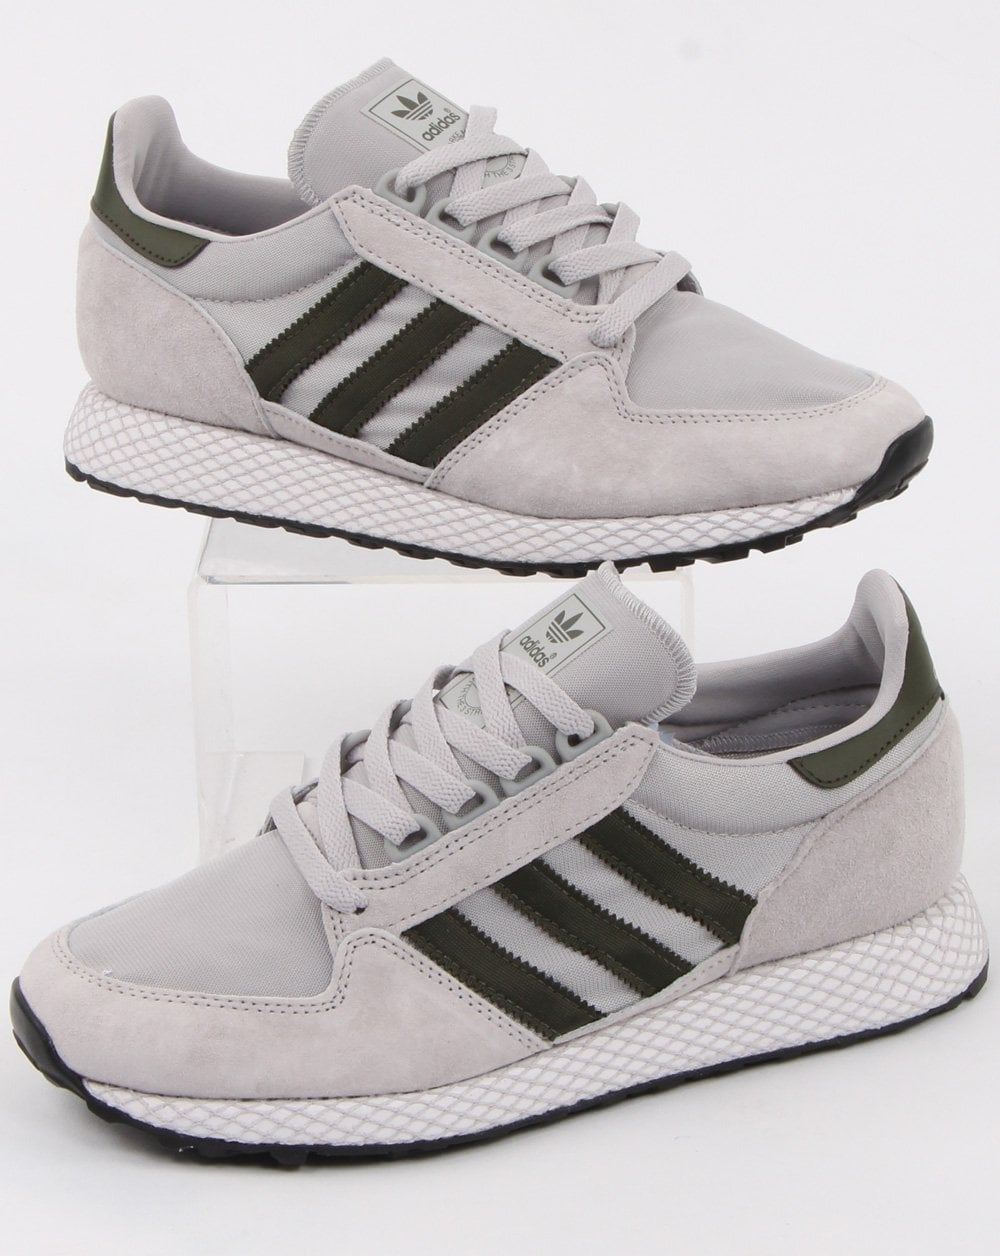 new product 68e0a bb840 adidas Trainers Adidas Forest Grove Trainers Greynight Cargo